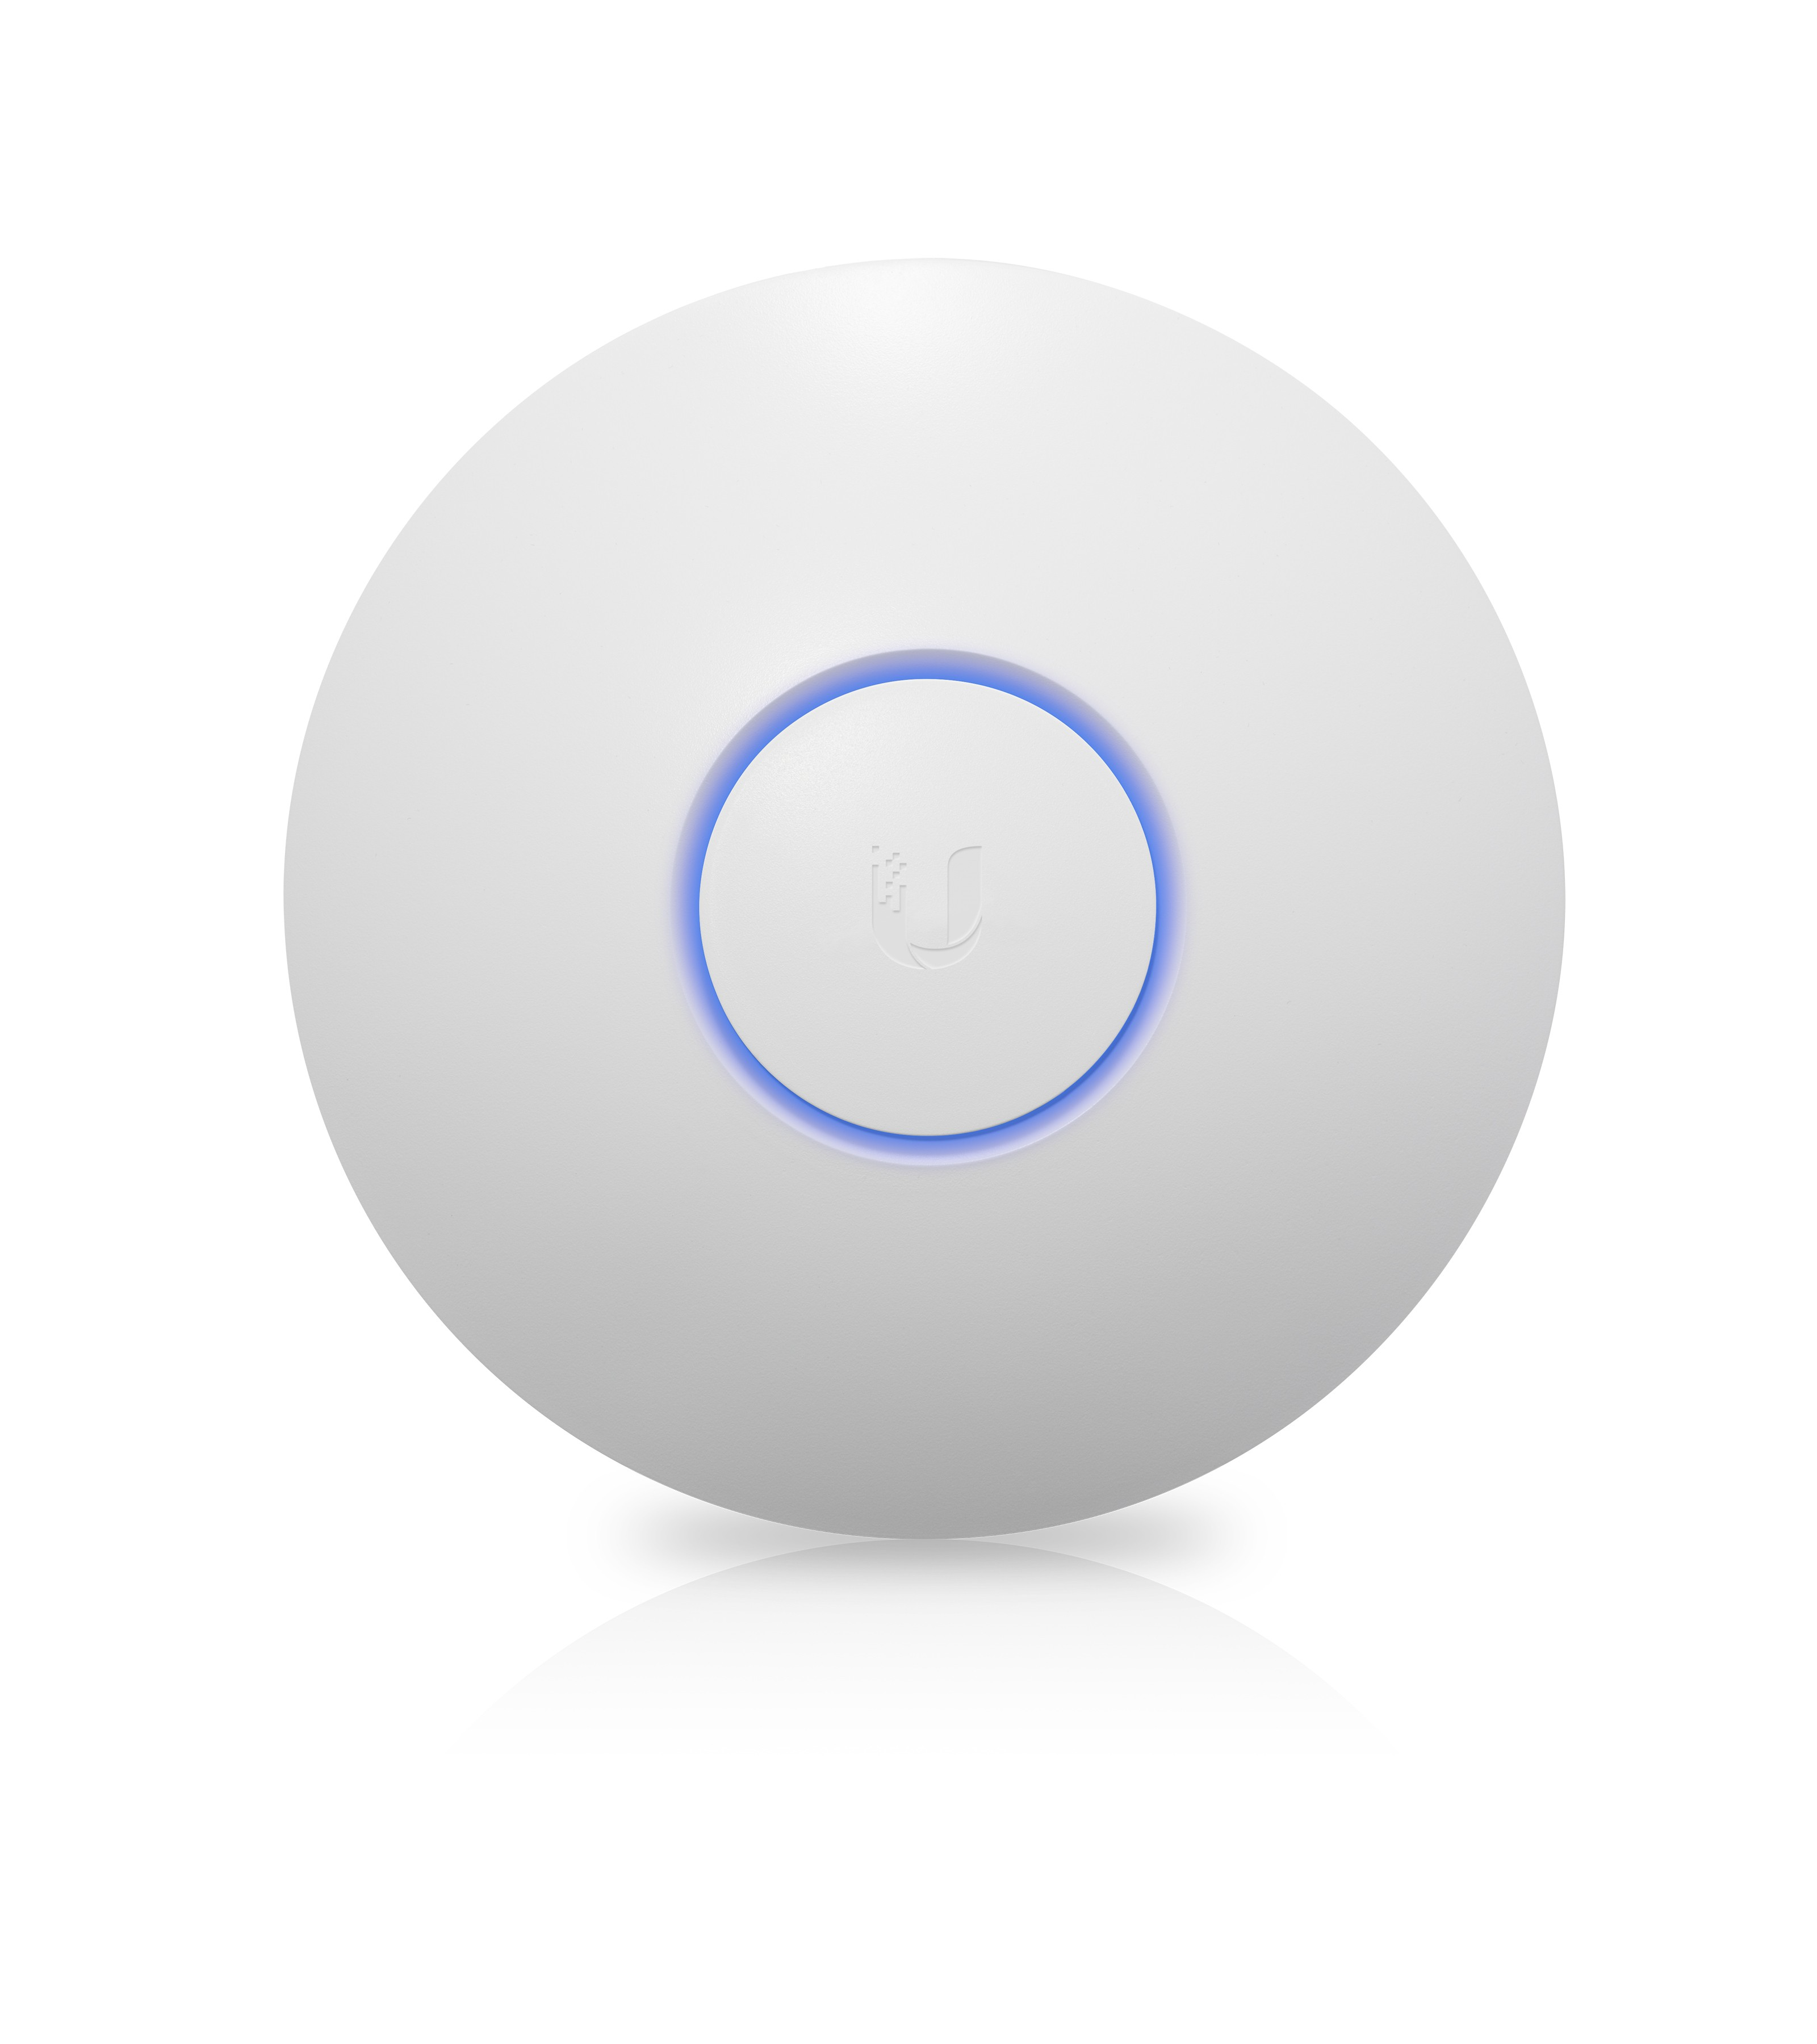 Ubiquiti UniFi UAP Pro Scalable WiFi Access Point